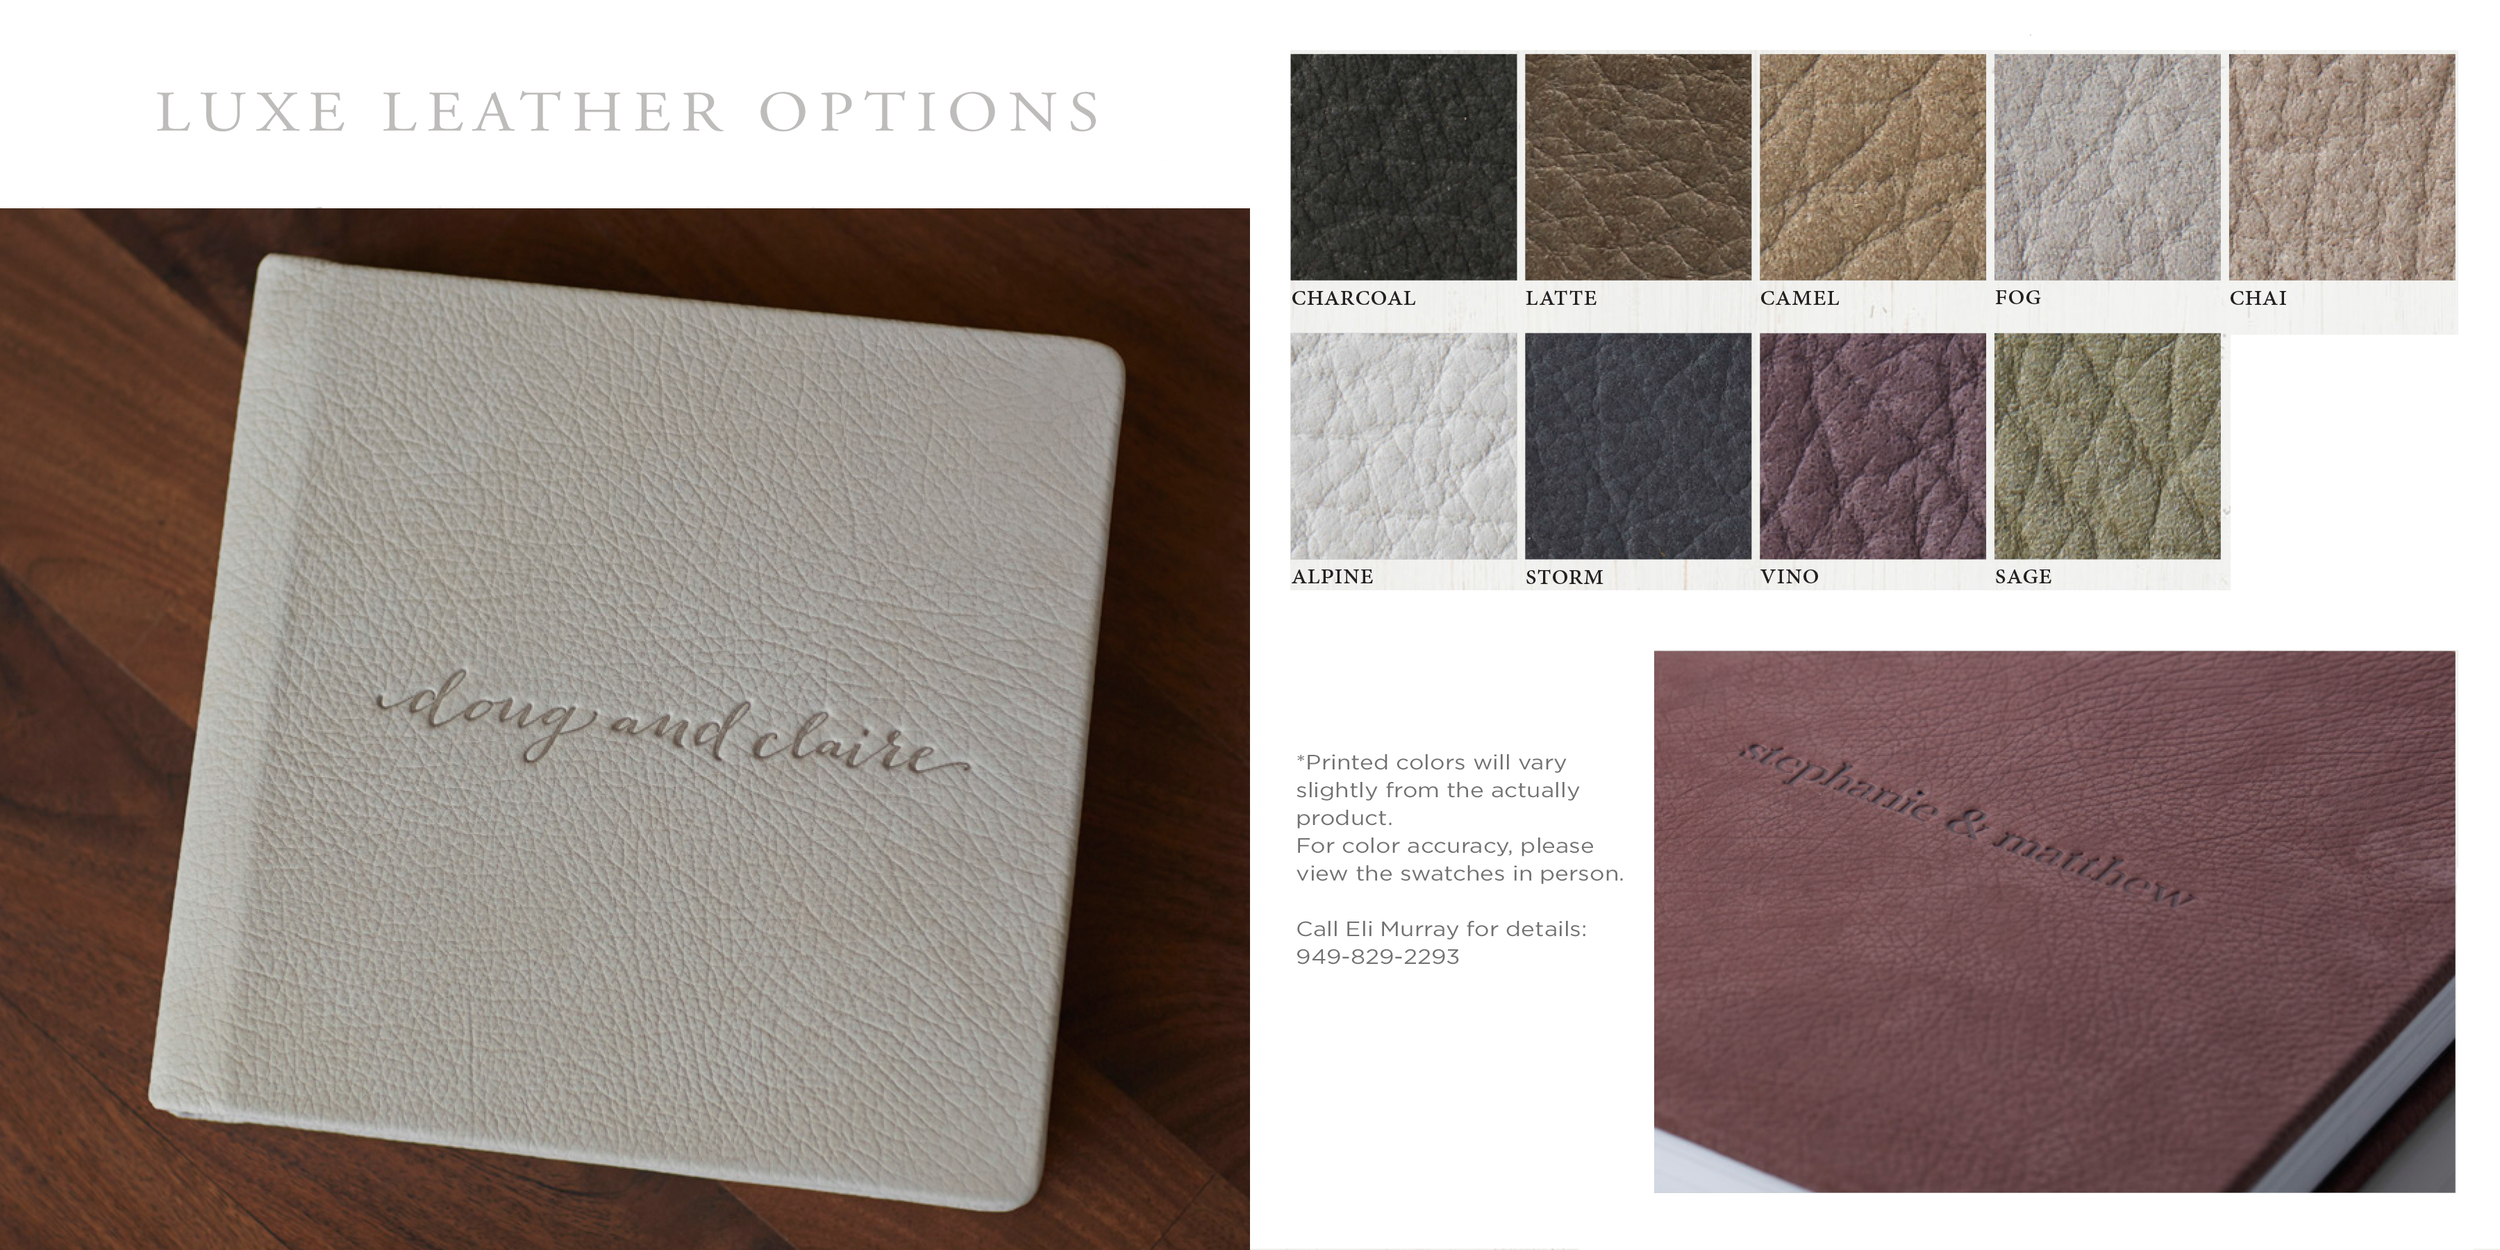 Luxe Leather Options.jpg